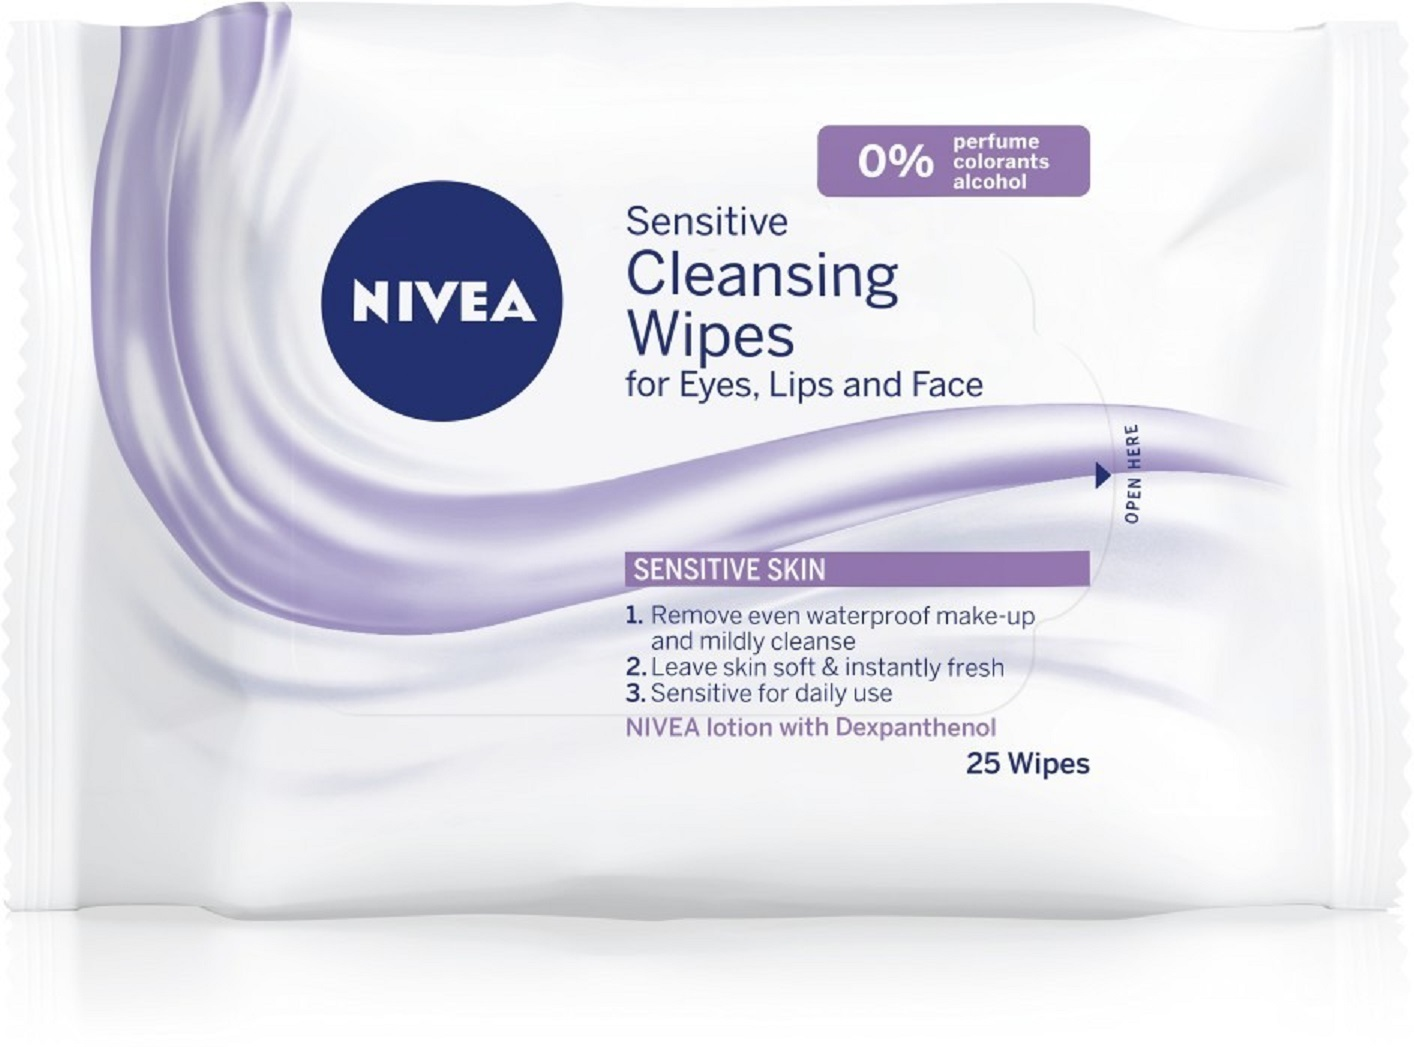 Nivea Sensitive Cleansing Wipes 25 pcs image 6